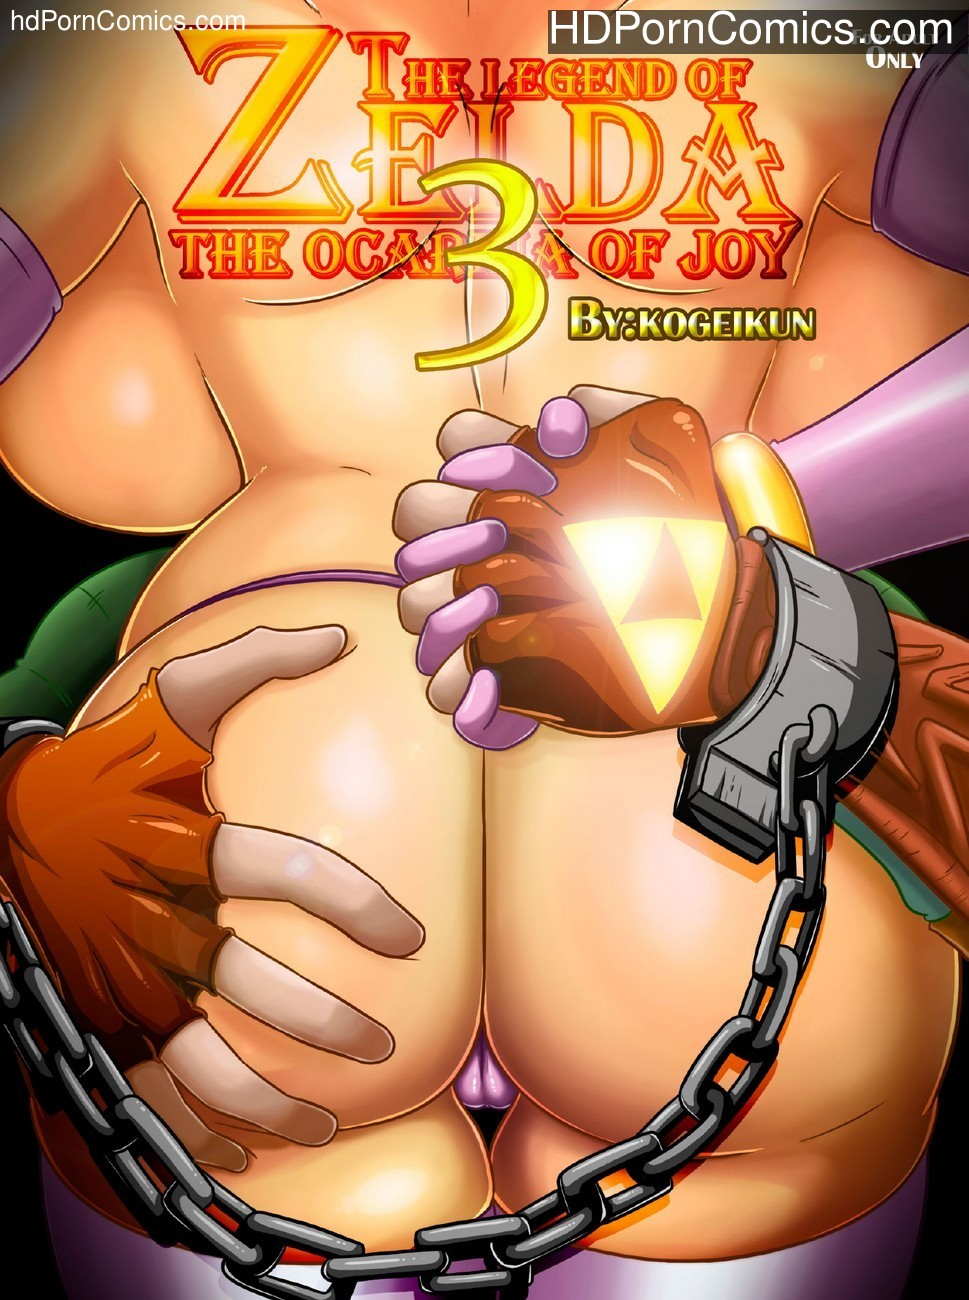 The Legend Of Zelda – The Ocarina Of Joy 3 Sex Comic